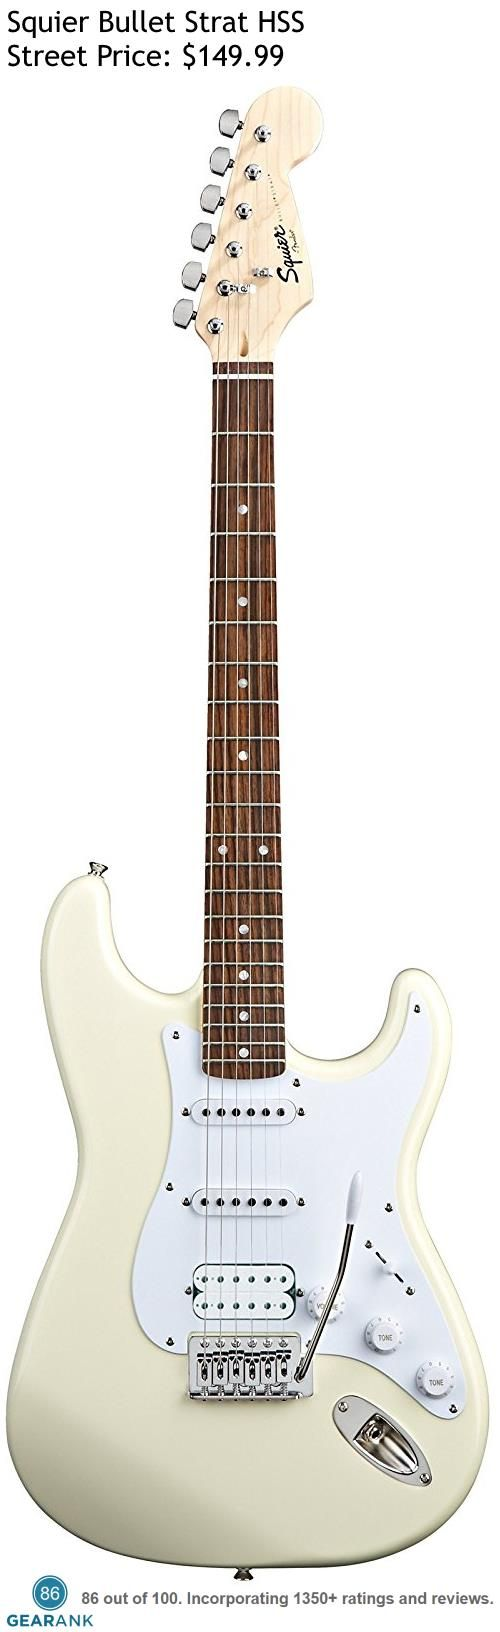 Squier Bullet Strat HSS. The HSS version of the Bullet Strat comes with a Humbucker pickup in the bridge position along with 2 single coil pickups. The street price is only $149.99. For a detailed guide to cheap electric guitars see https://www.gearank.com/guides/cheap-electric-guitars